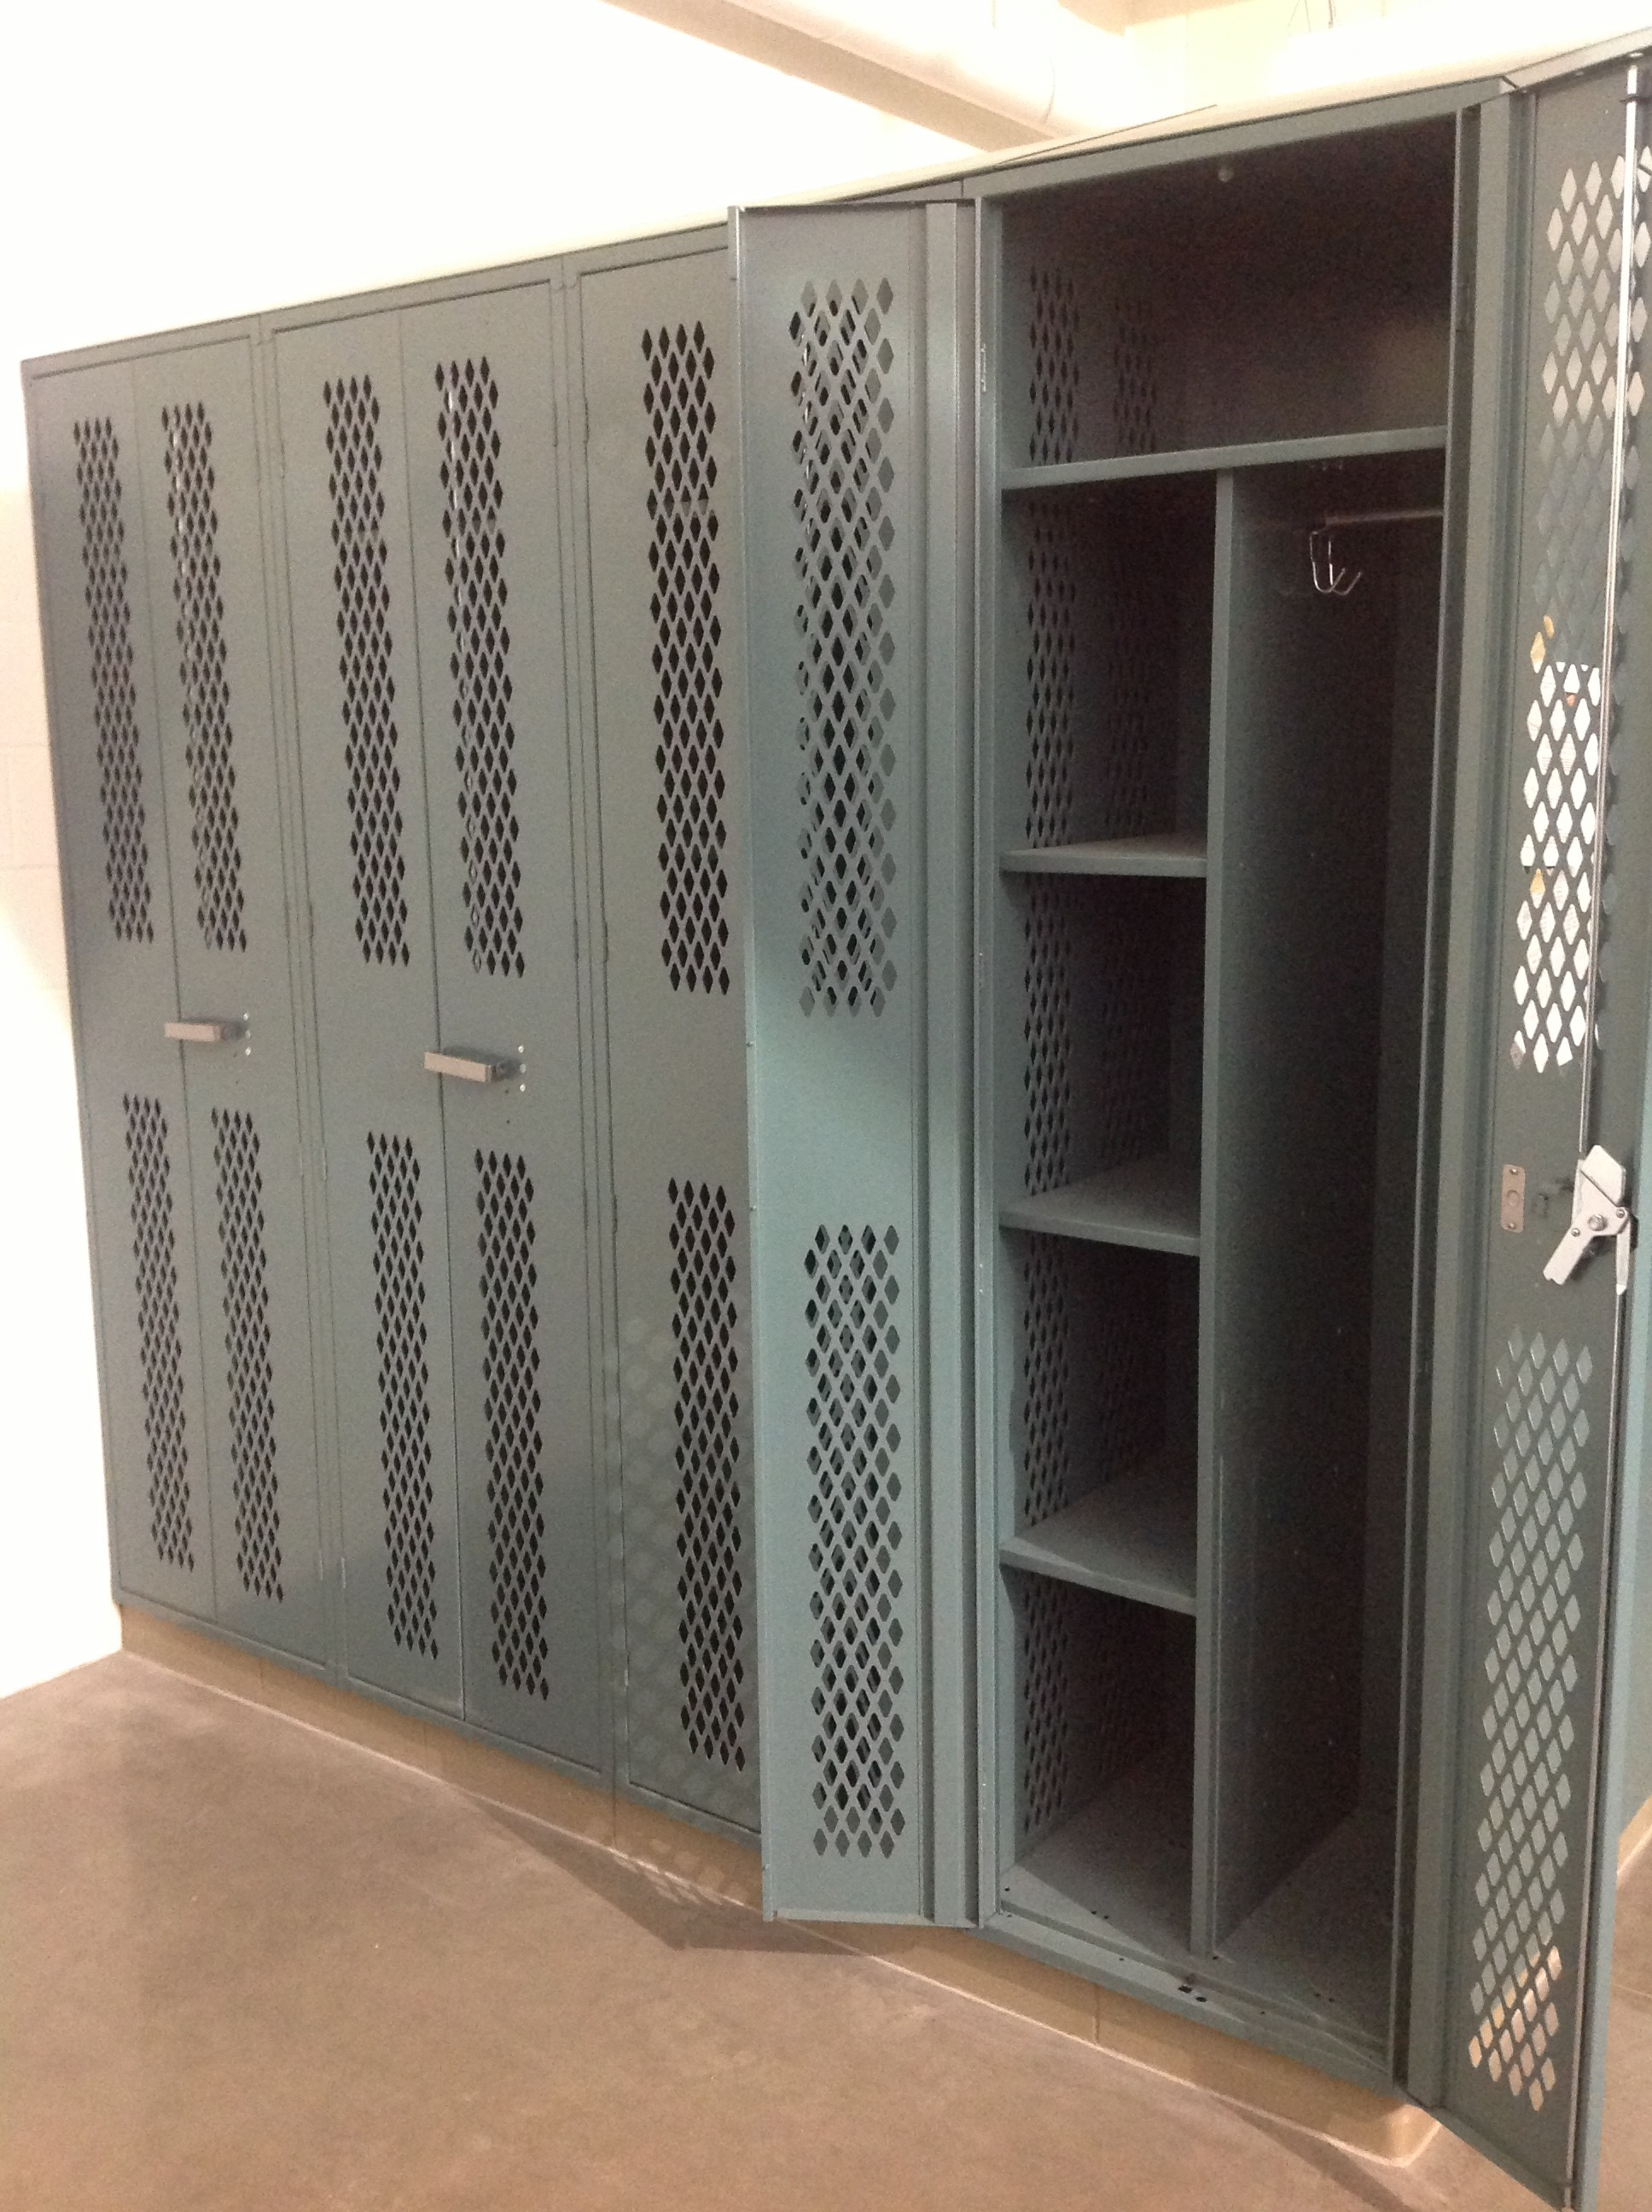 Penco Industries | Penco Lockers | Penco Careers